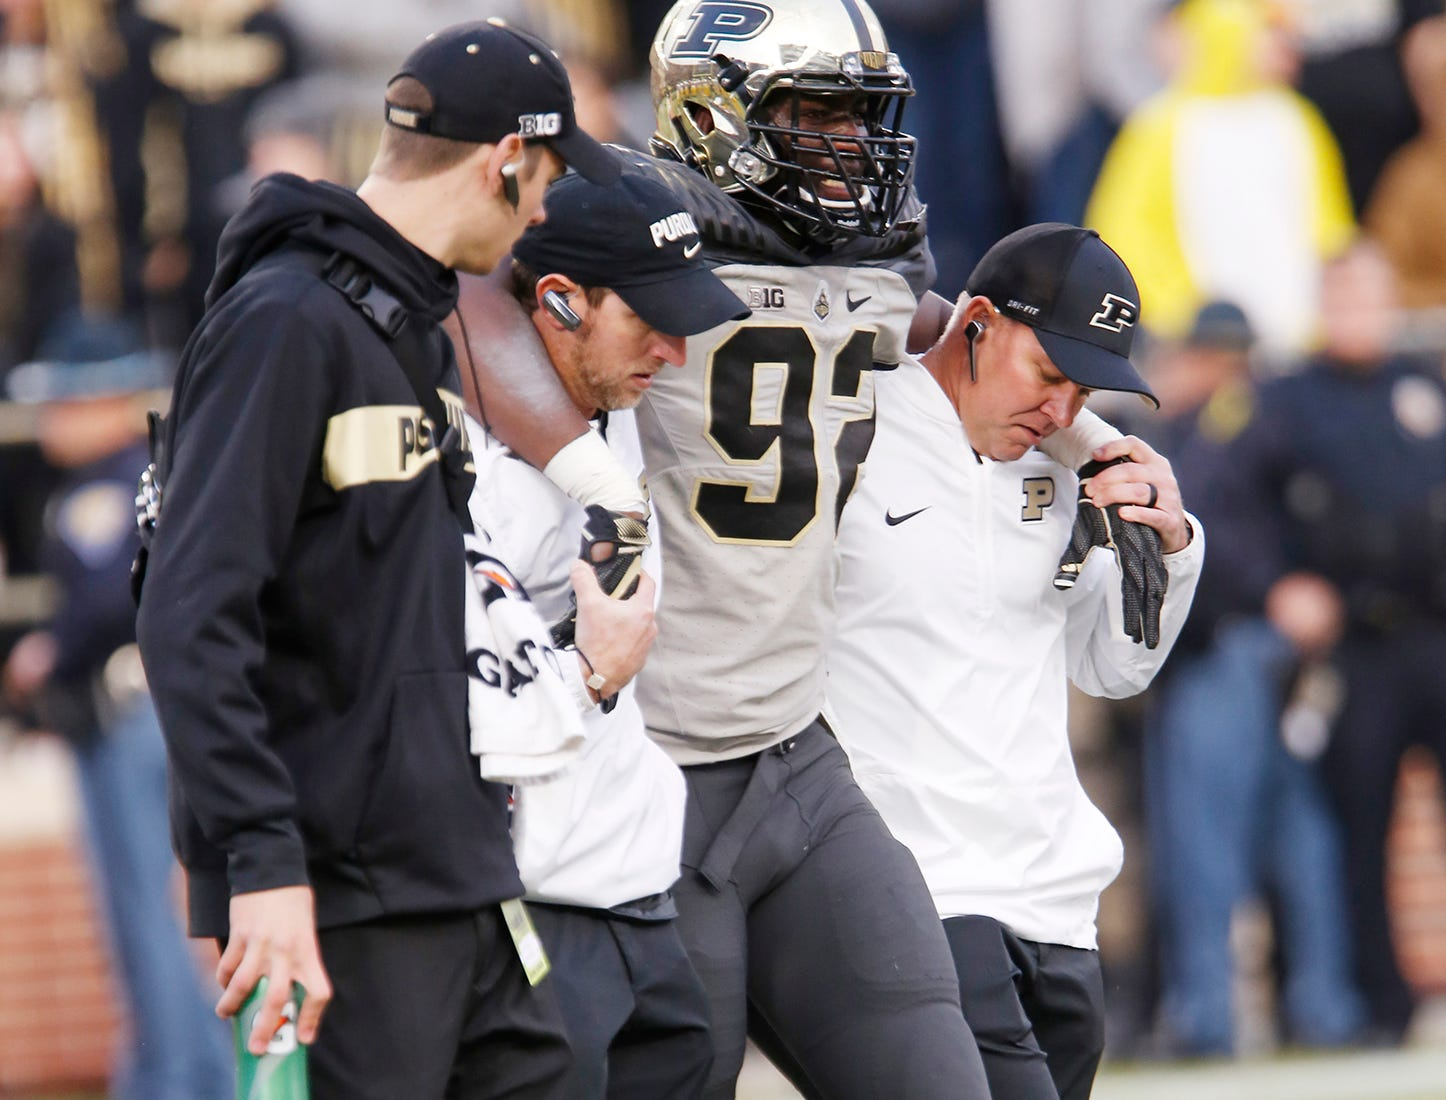 Giovanni Reviere of Purdue is helped off the field after suffering an injury in the second half against Iowa Saturday, November 3, 2018, at Ross-Ade Stadium. Purdue defeated Iowa 38-36.